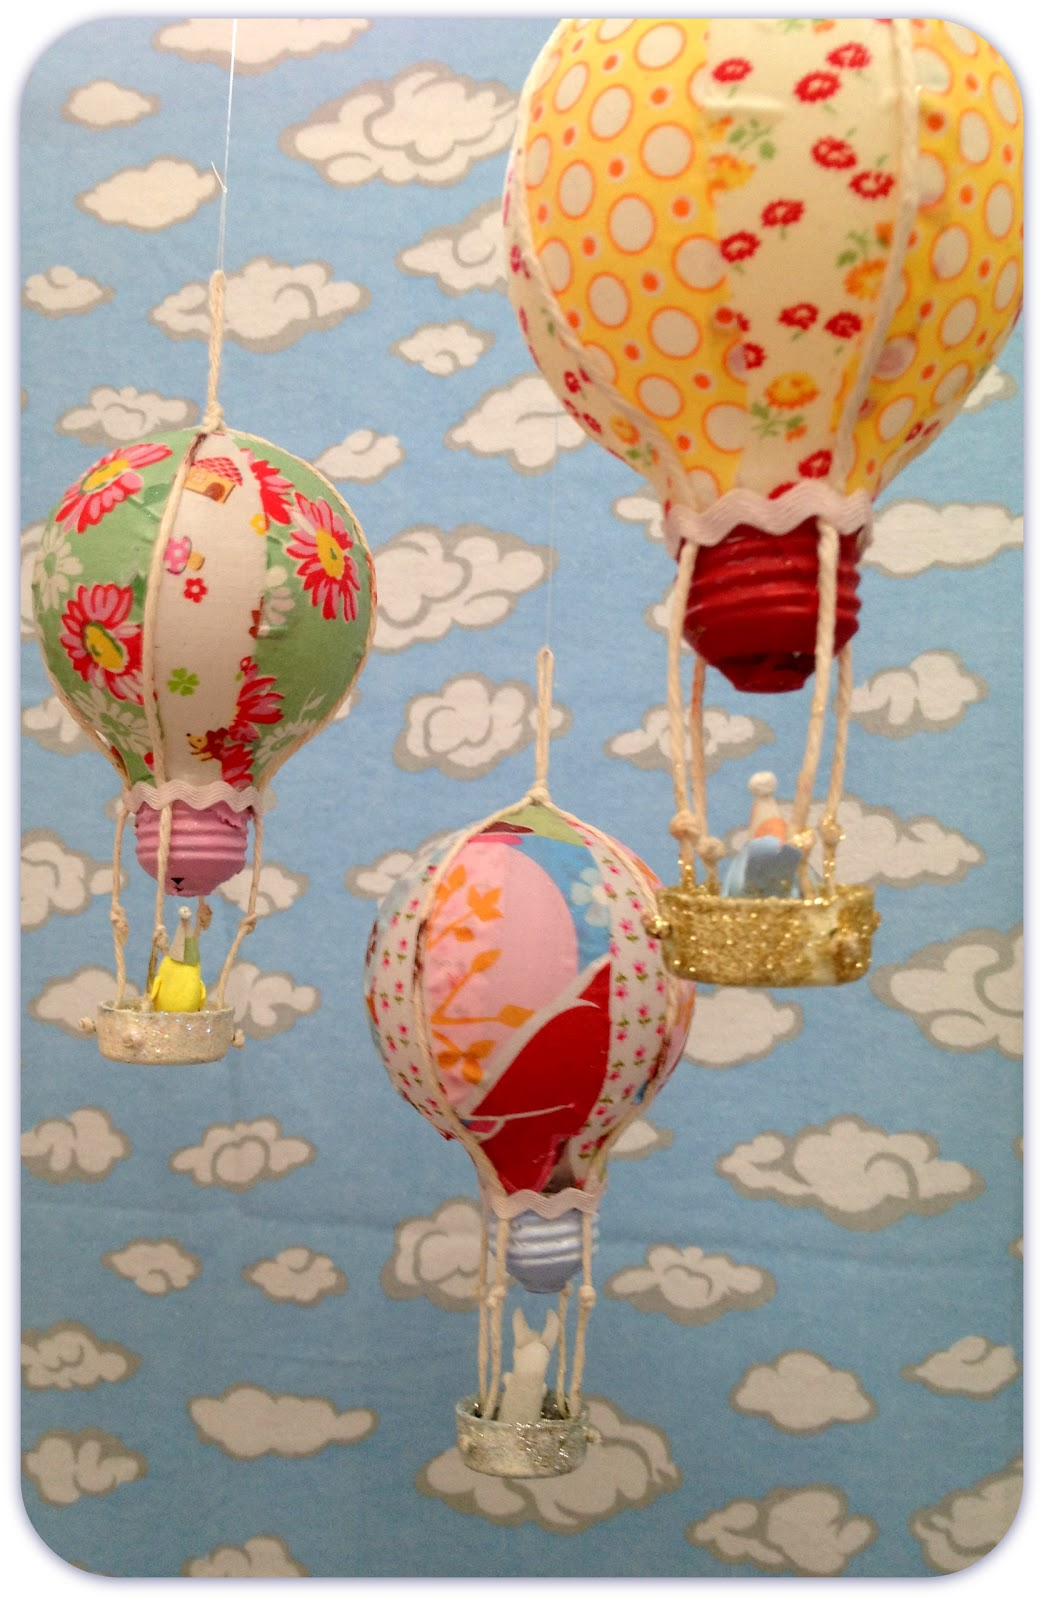 Jennuine By Rook No 17 Repurposed Light Bulb Hot Air Balloon DIY